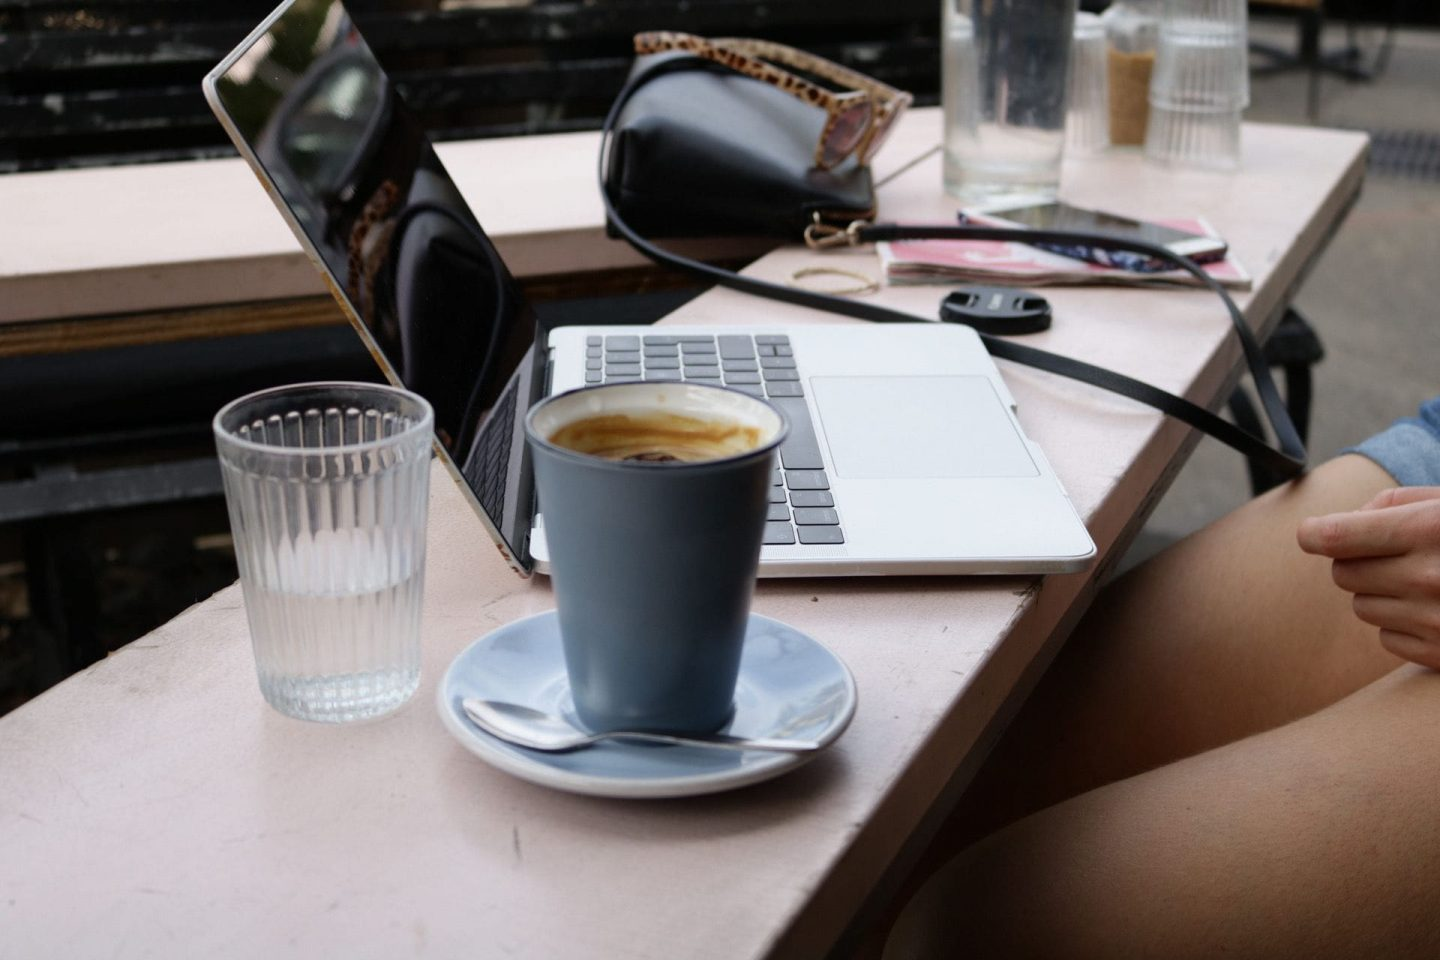 Working From Home: How To Stay Productive and Avoid Snacking